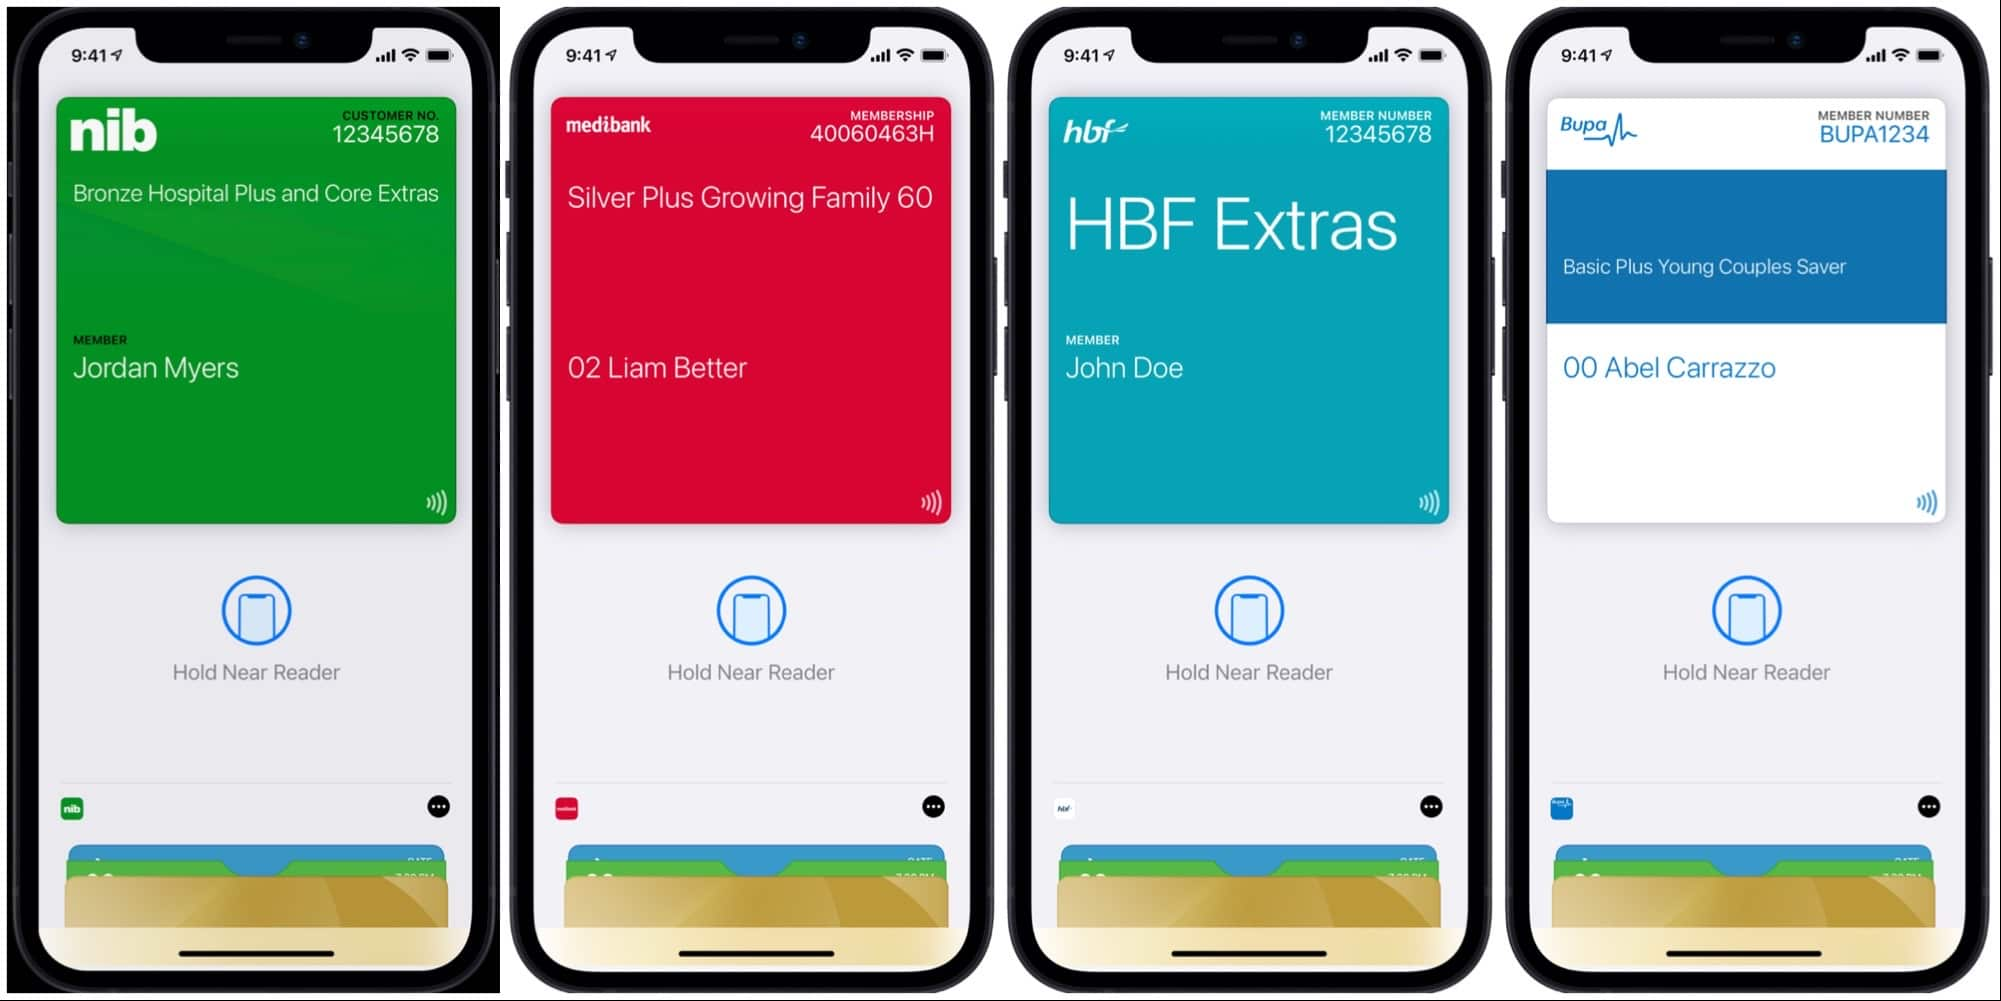 Health insurance cards on the iPhone in Australia